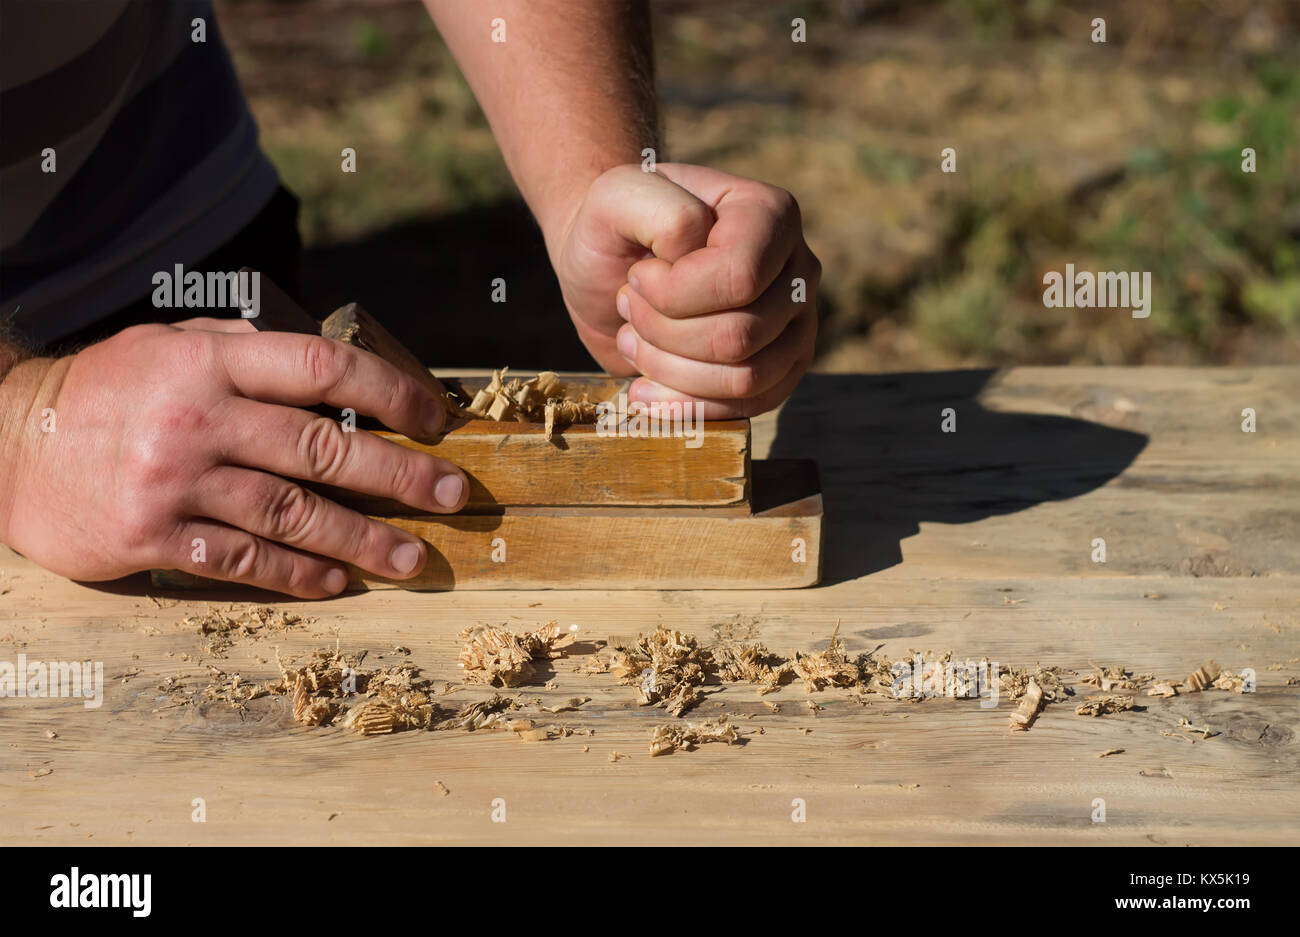 Hands of a carpenter planed wood planes, work on nature - Stock Image